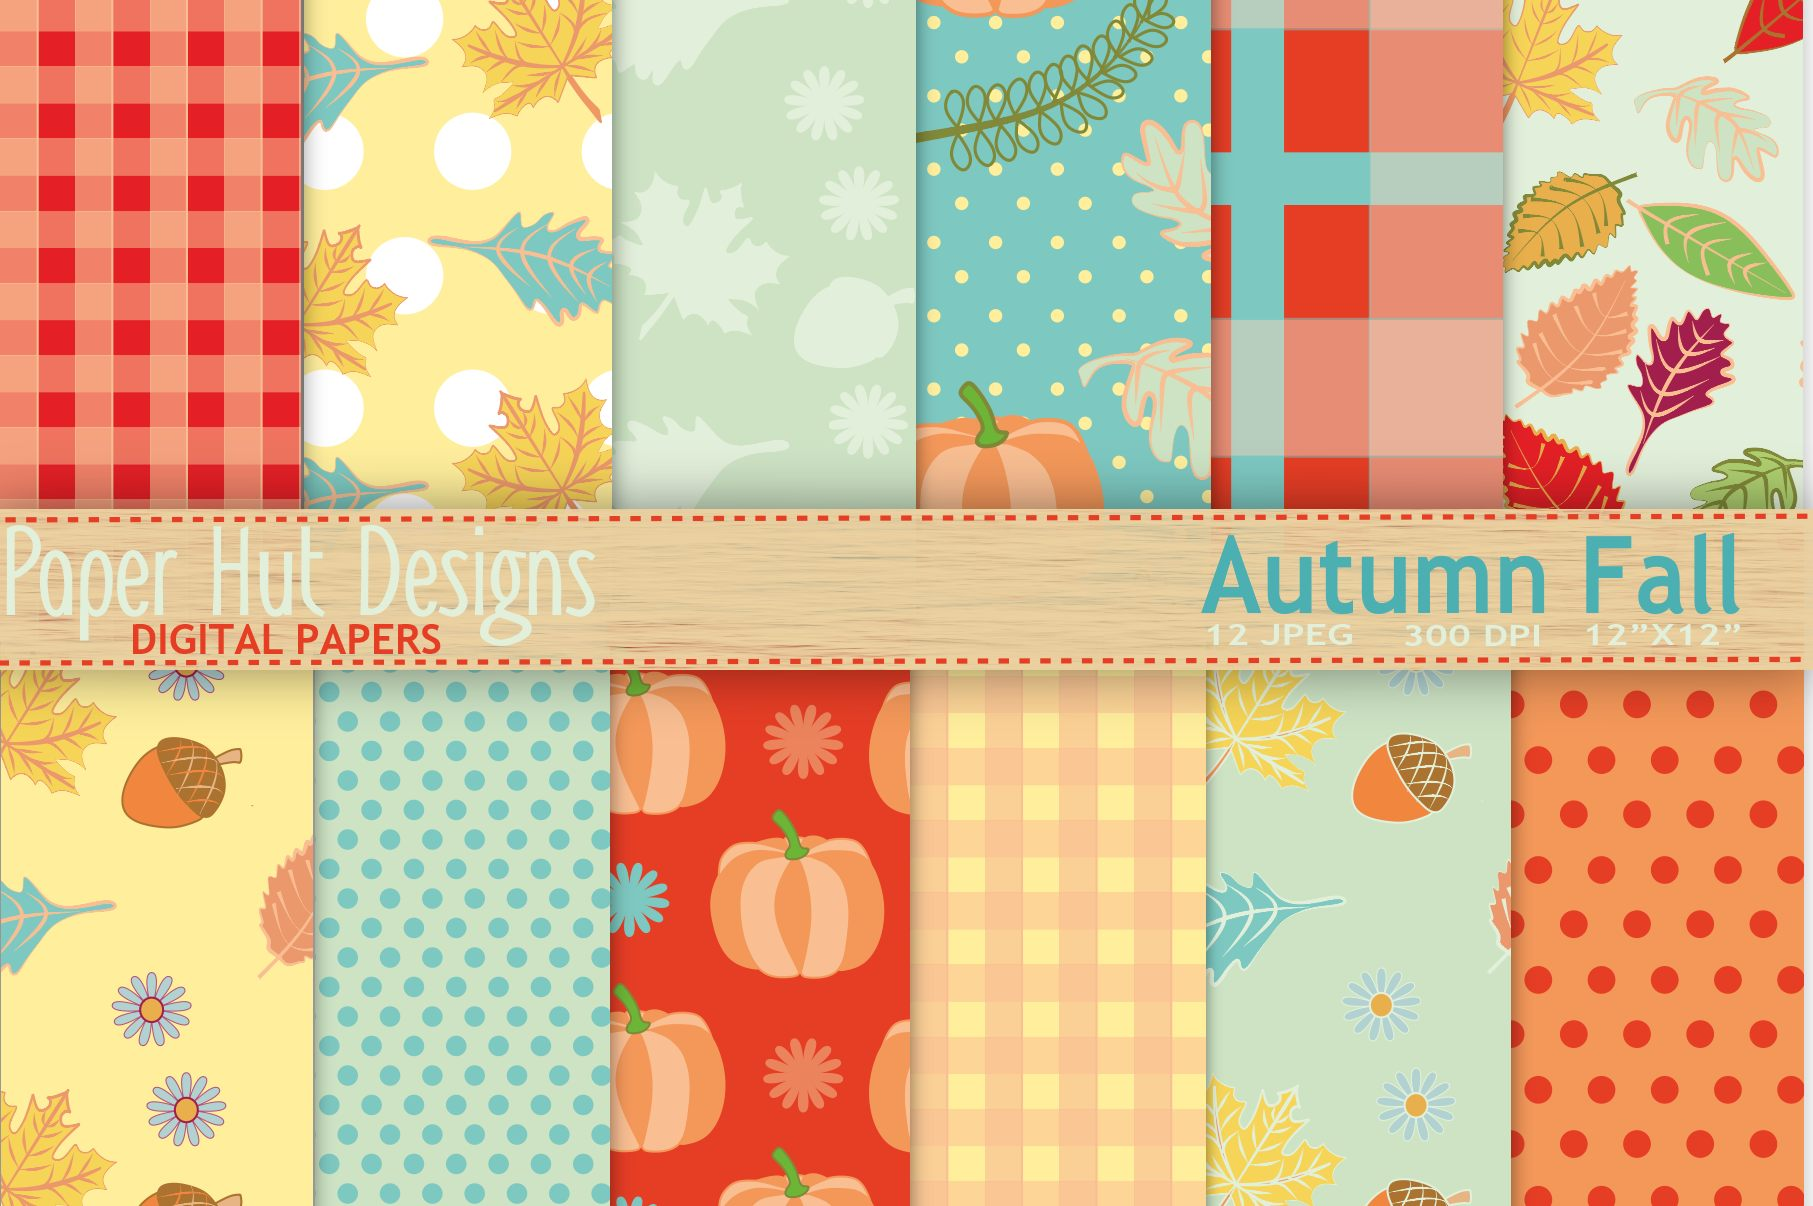 Autumn Fall Digital Papers Example Image 1